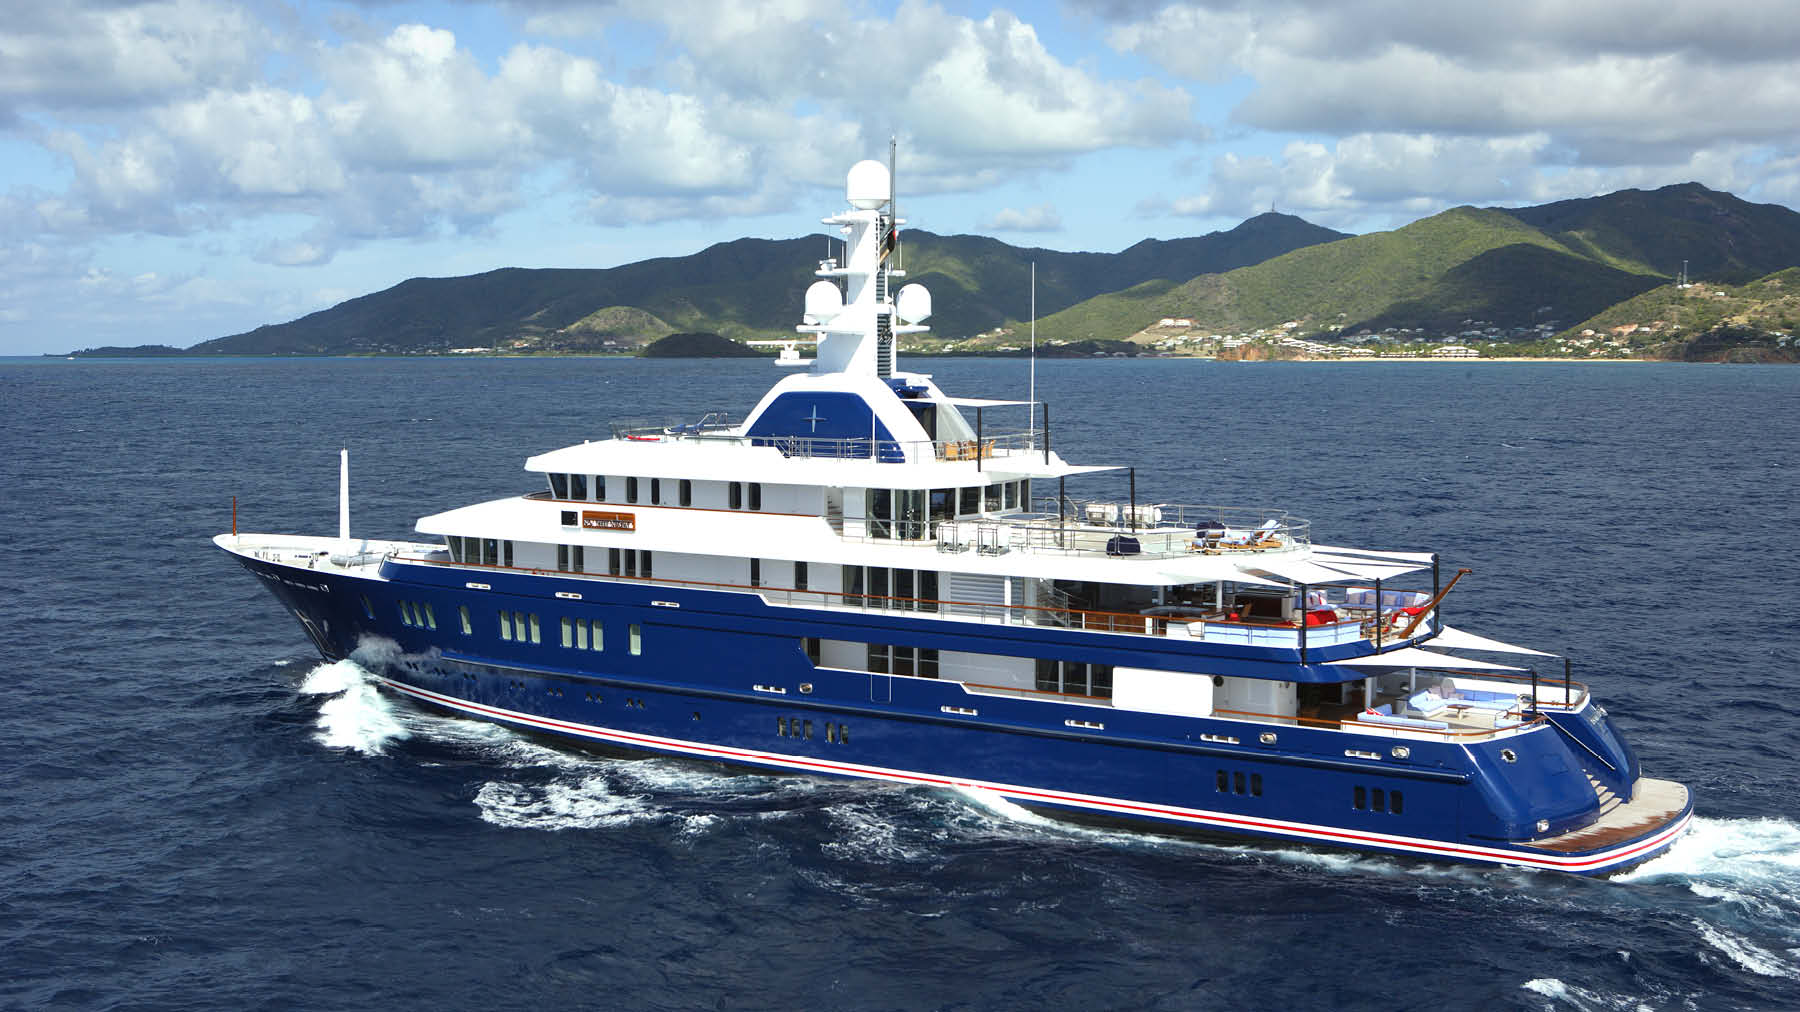 Northern Star was built for an extremely experienced and